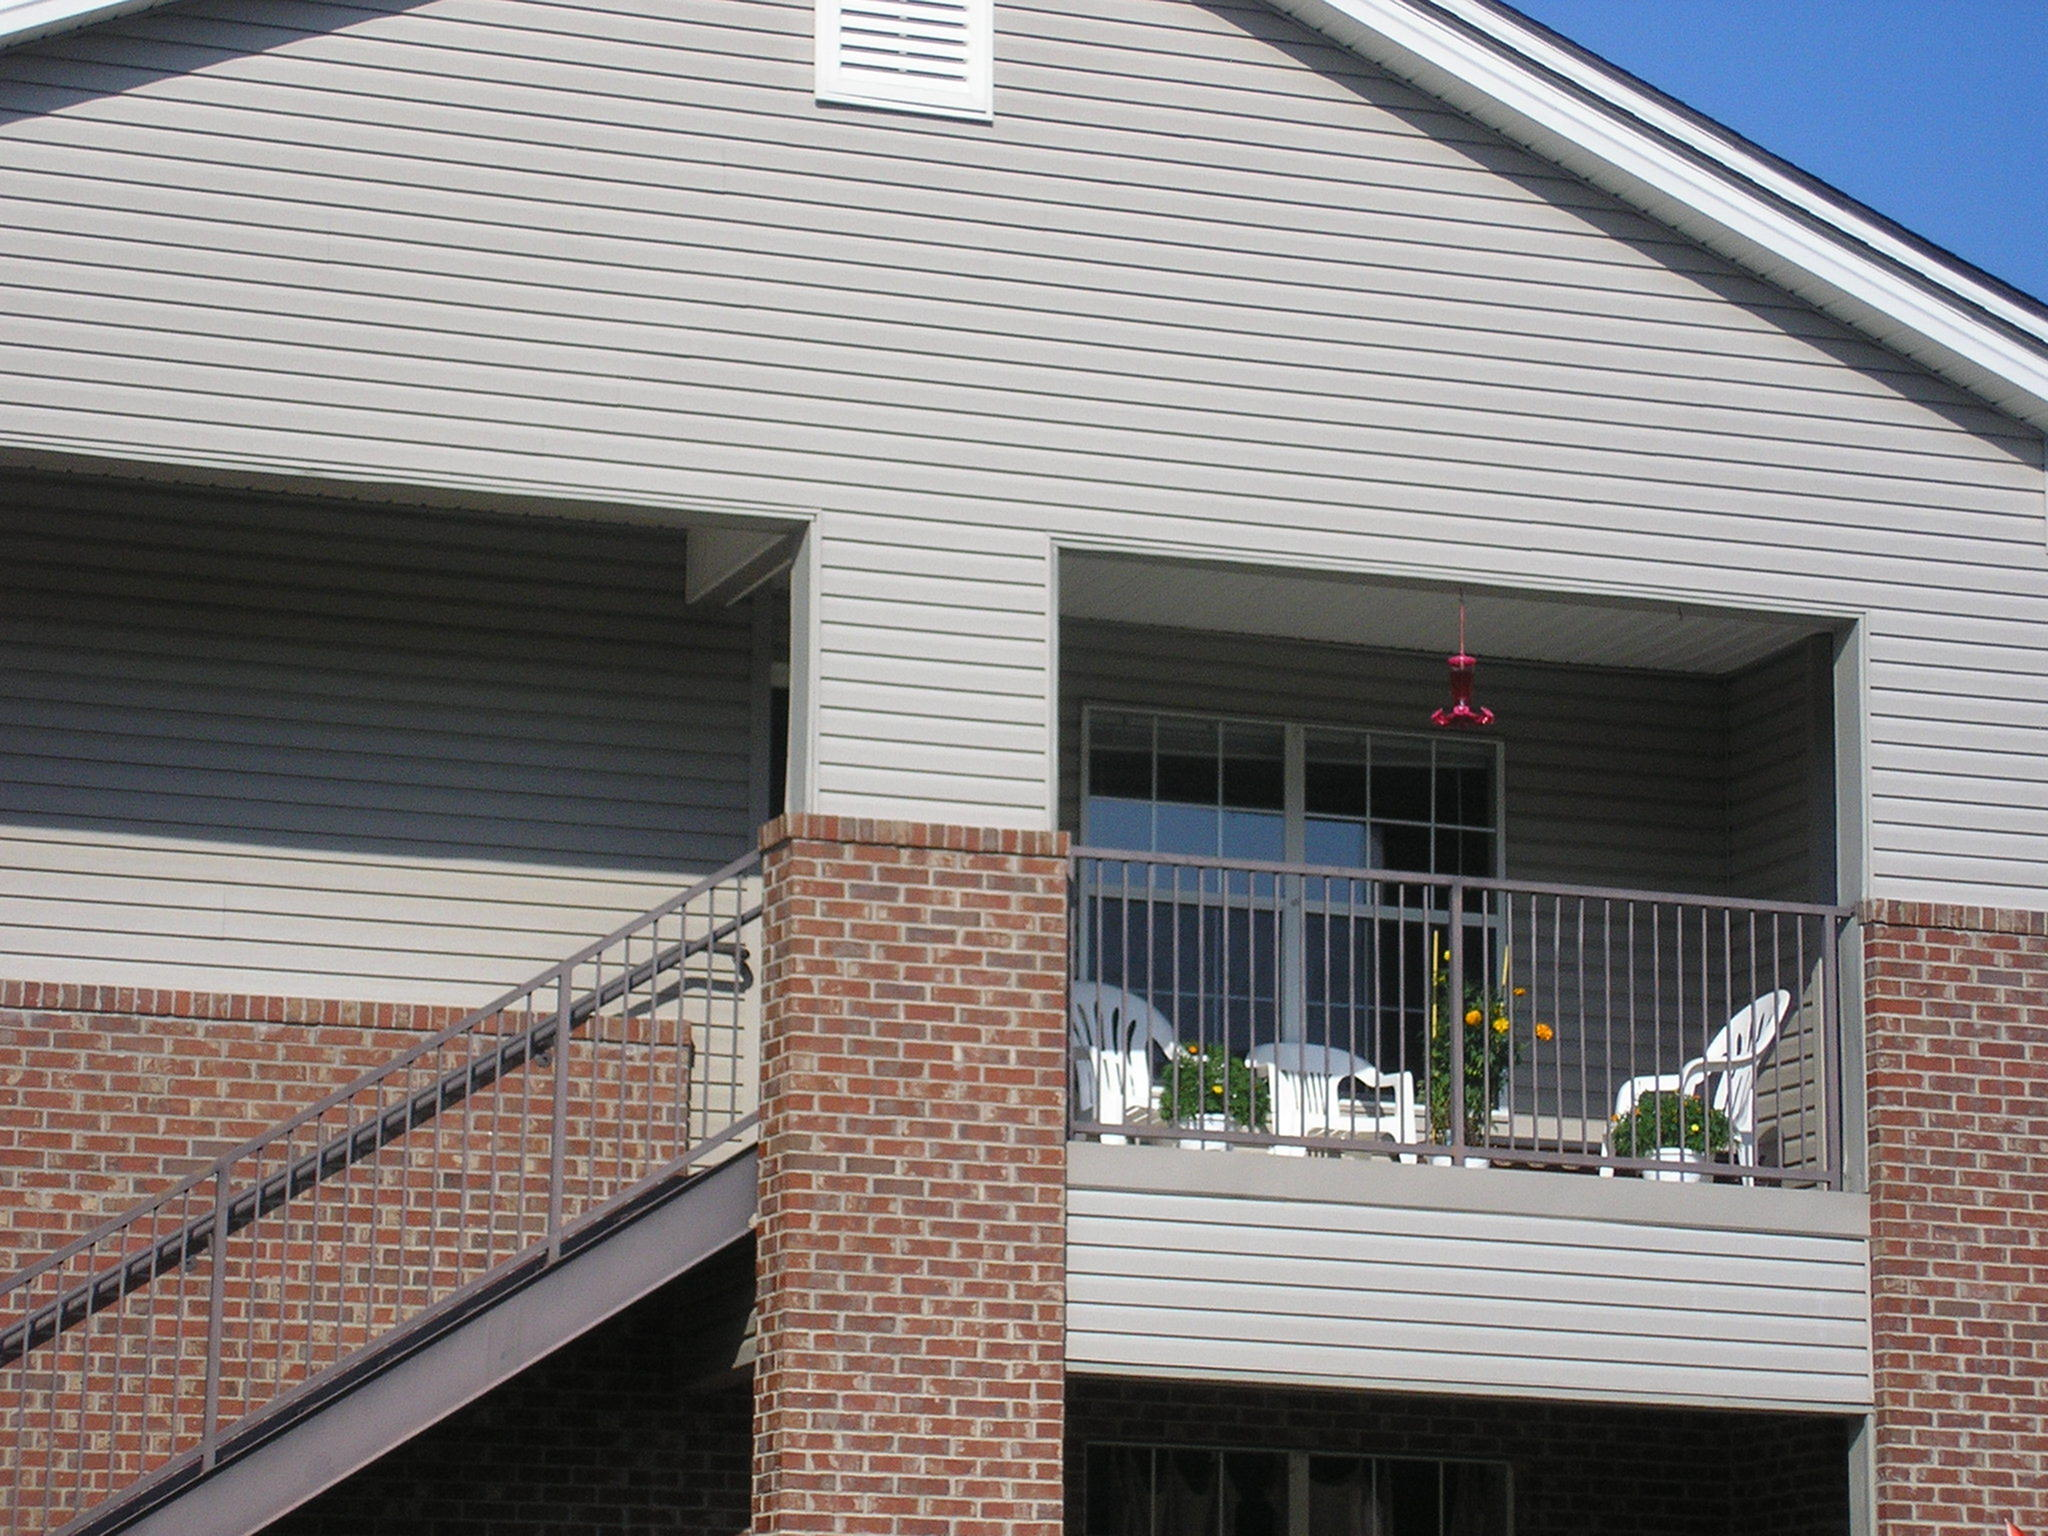 Image of Balcony for Sycamore Place Apartments